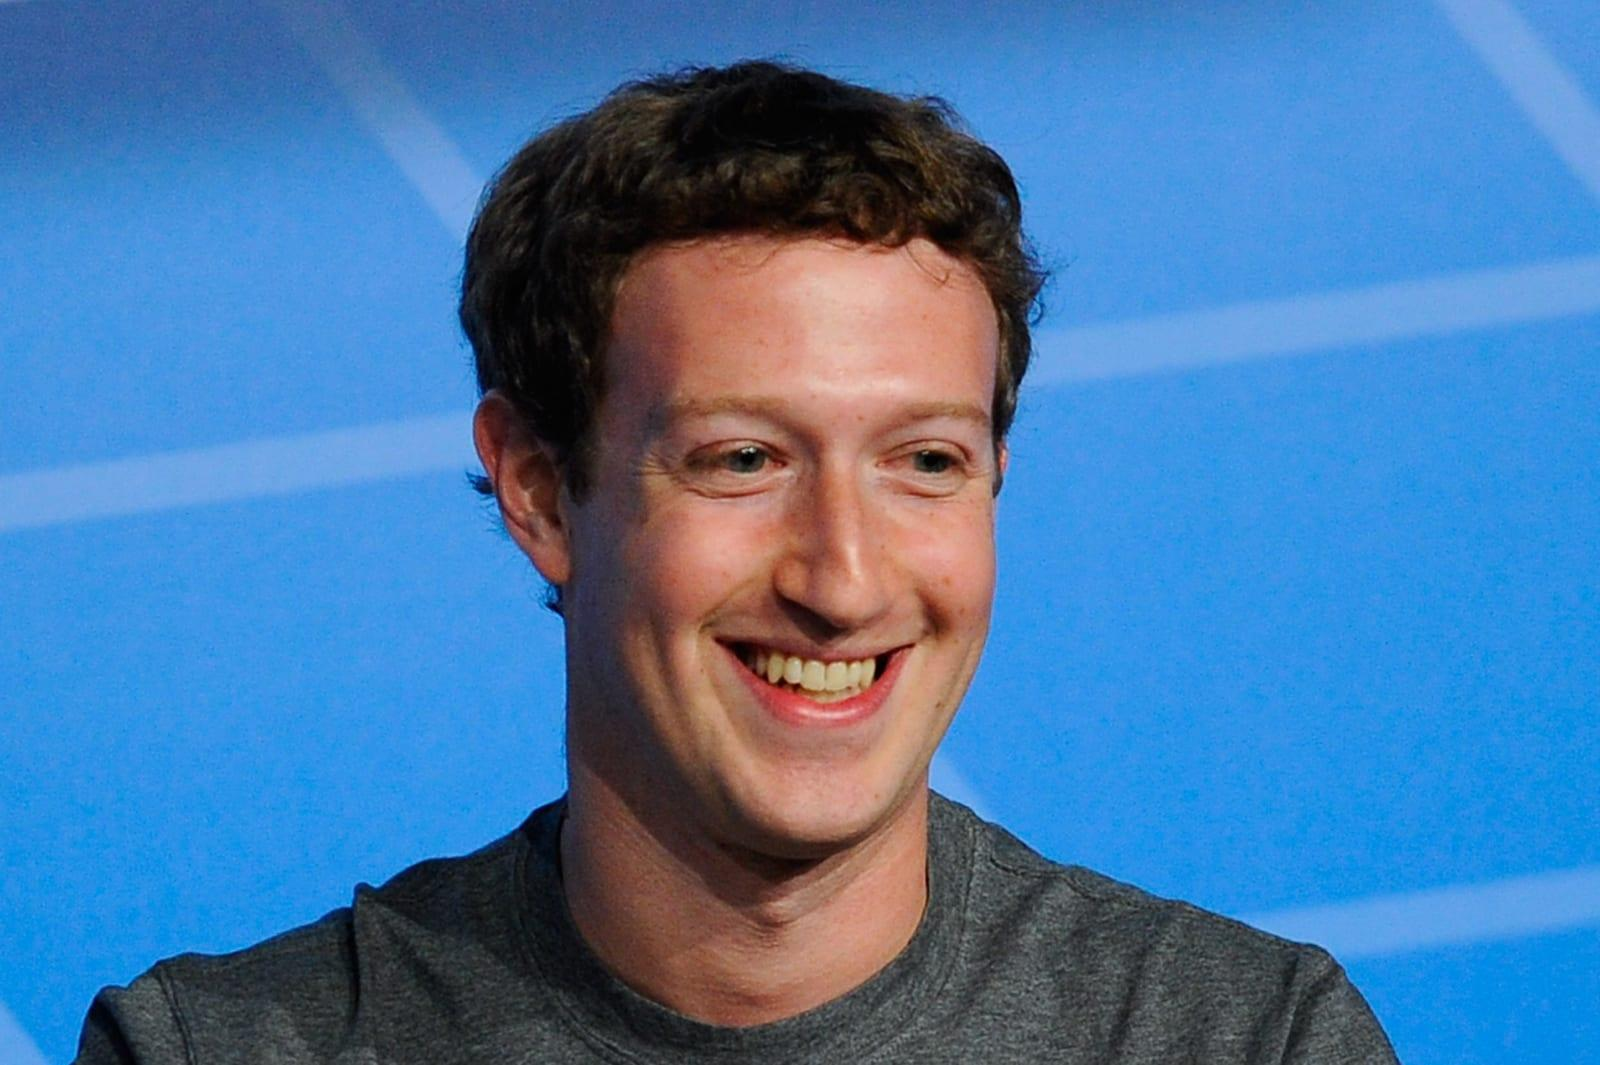 Facebook, not presidential ambition, is why Zuckerberg's on tour | Engadget